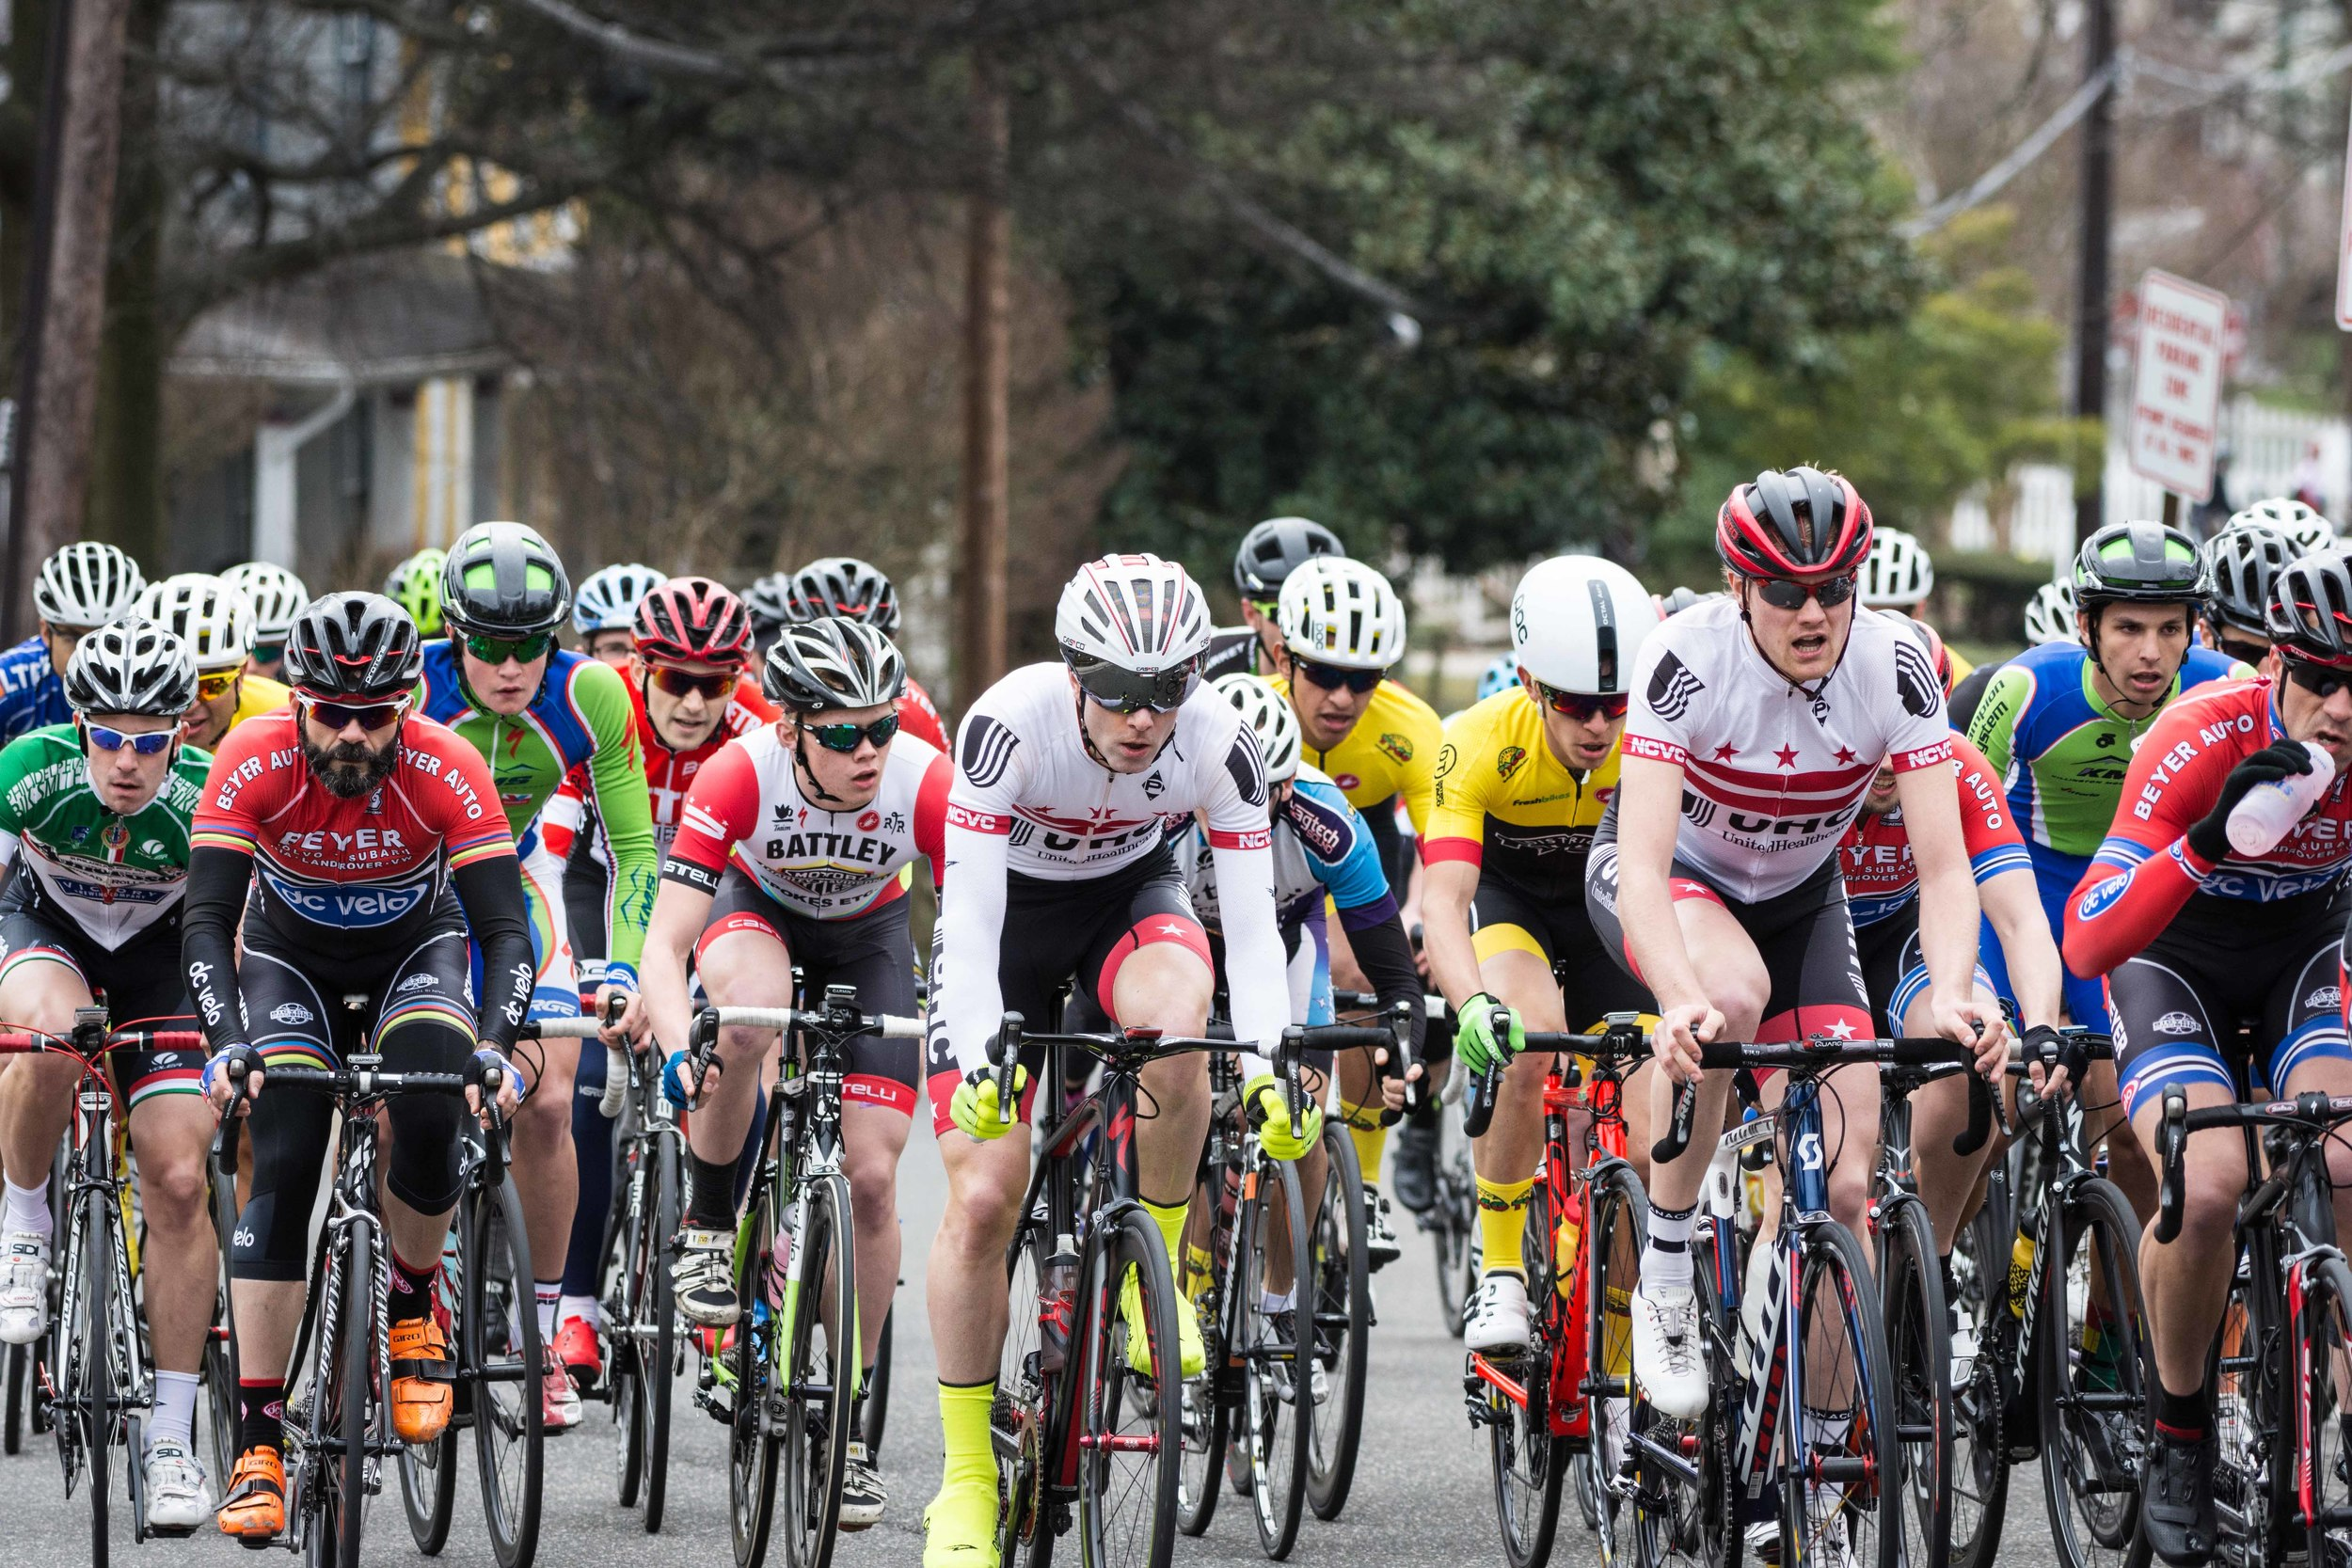 20160312110328 Route One Rampage Criterium 0527.jpg